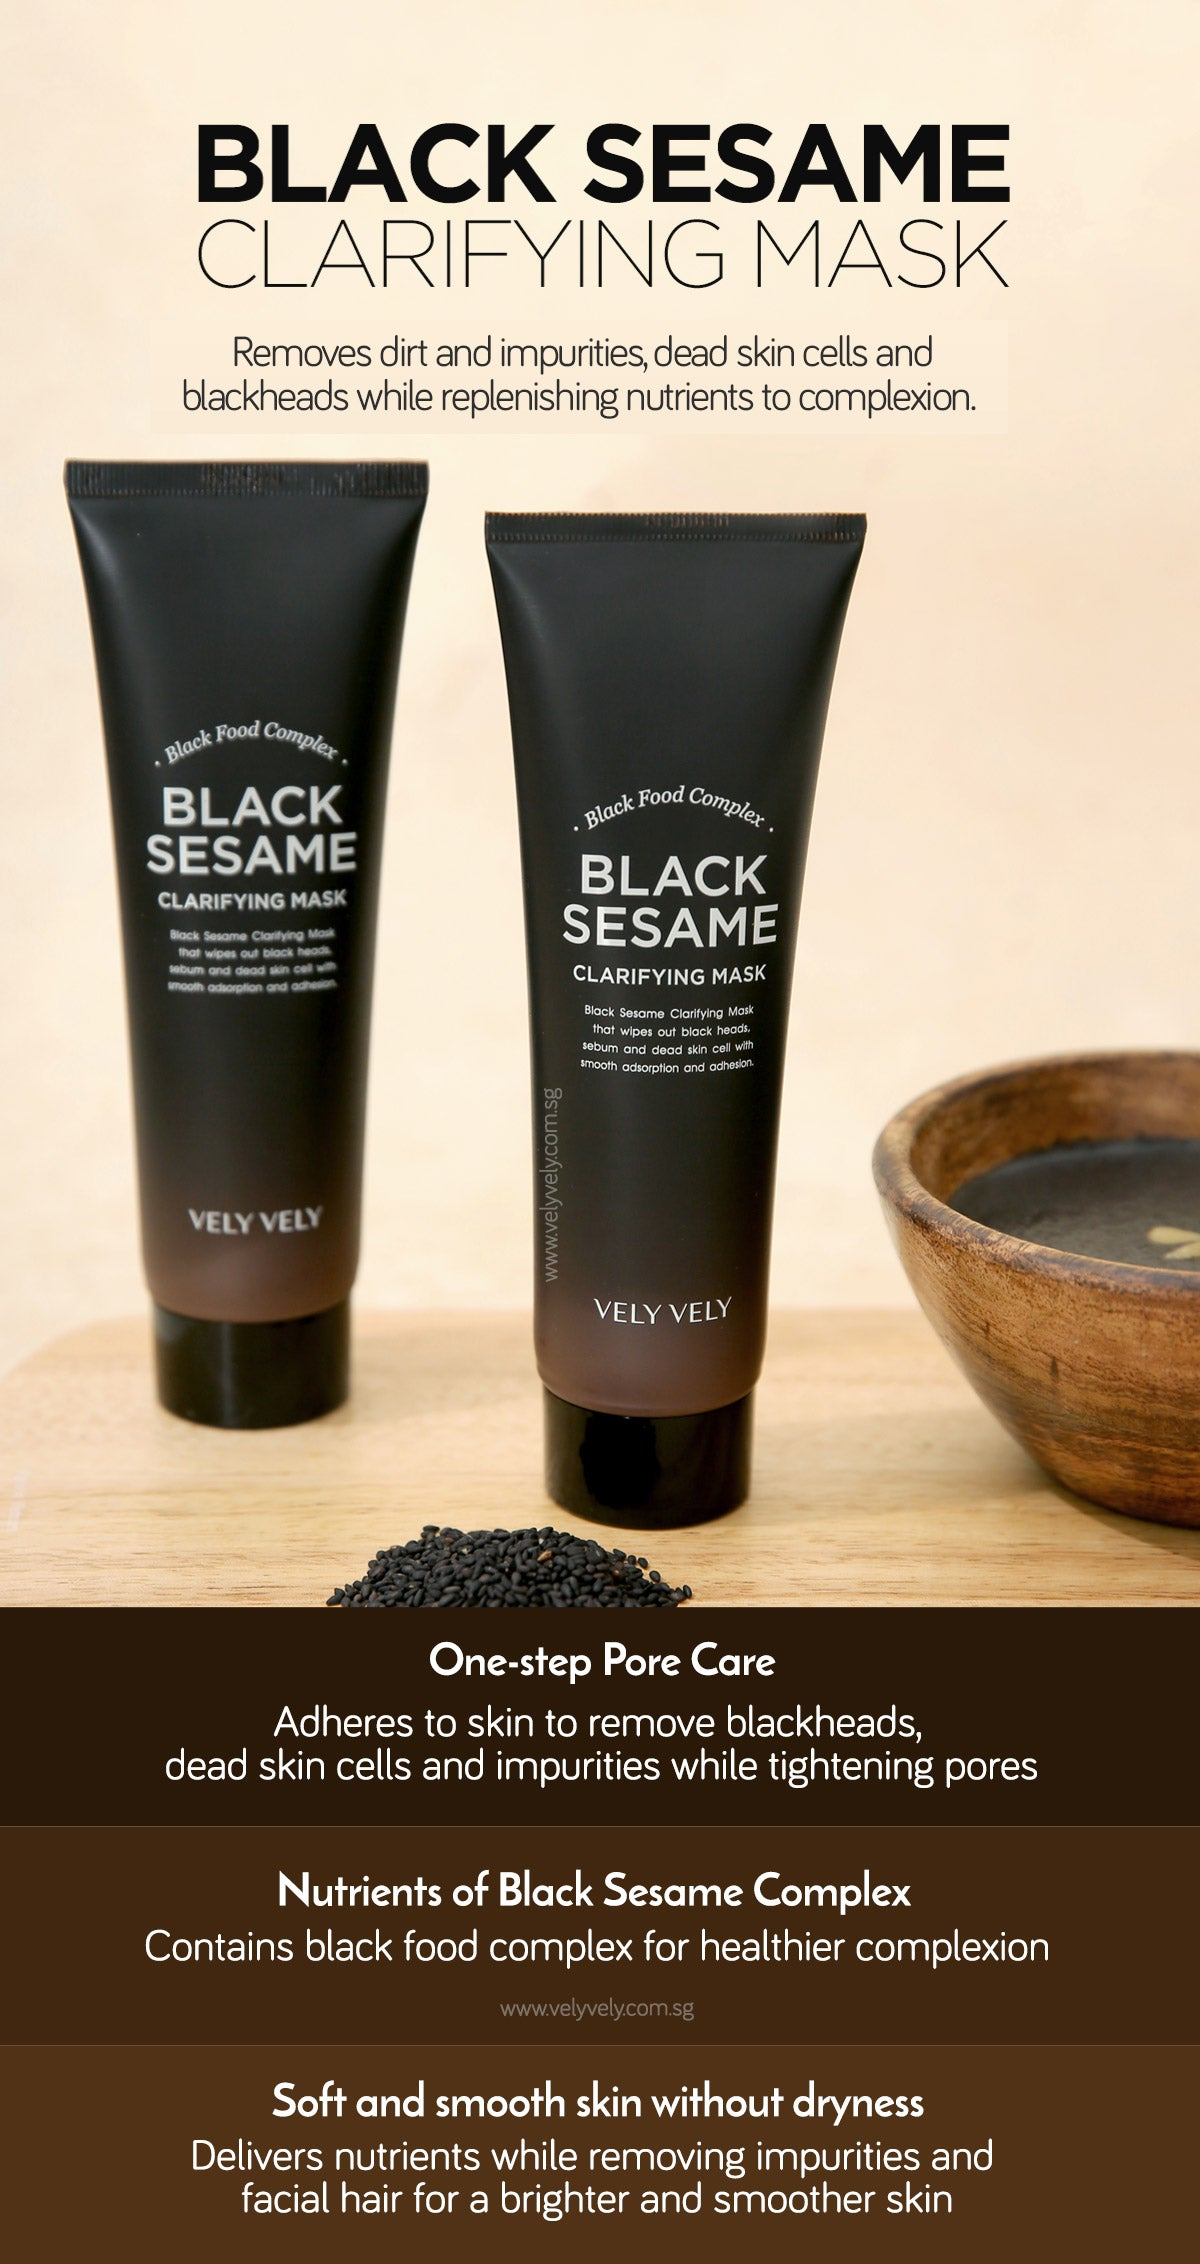 Vely Vely Black Sesame Clarifying Mask removes dirt and impurities, dead skin cells and blackheads while replenishing nutrients to skin.